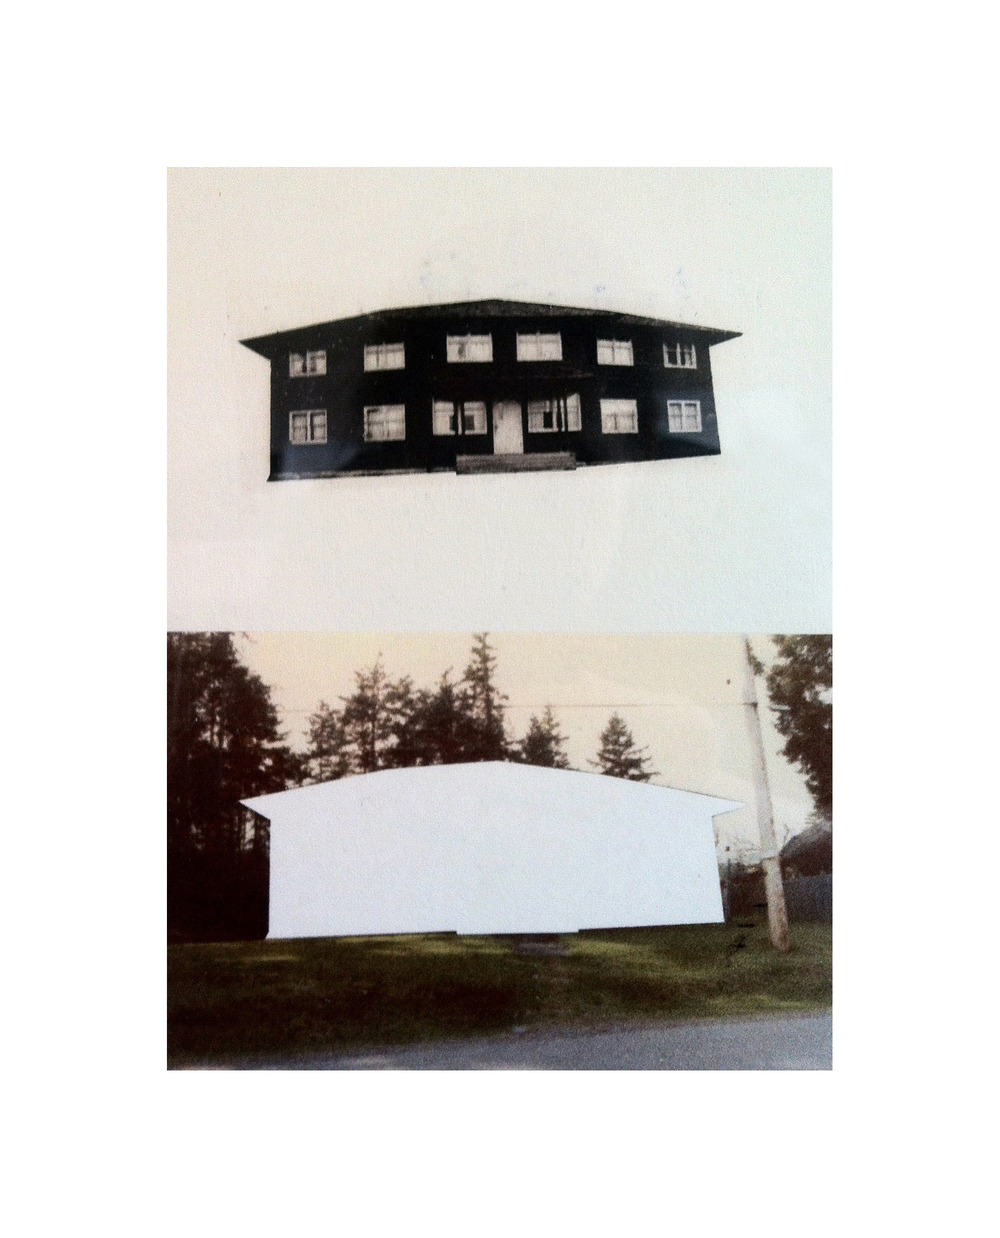 "Cabin Cutouts: Bowen Inn and Union staff dormitory    Intaglio, digital, chine coll  é       15""x11""  2013"